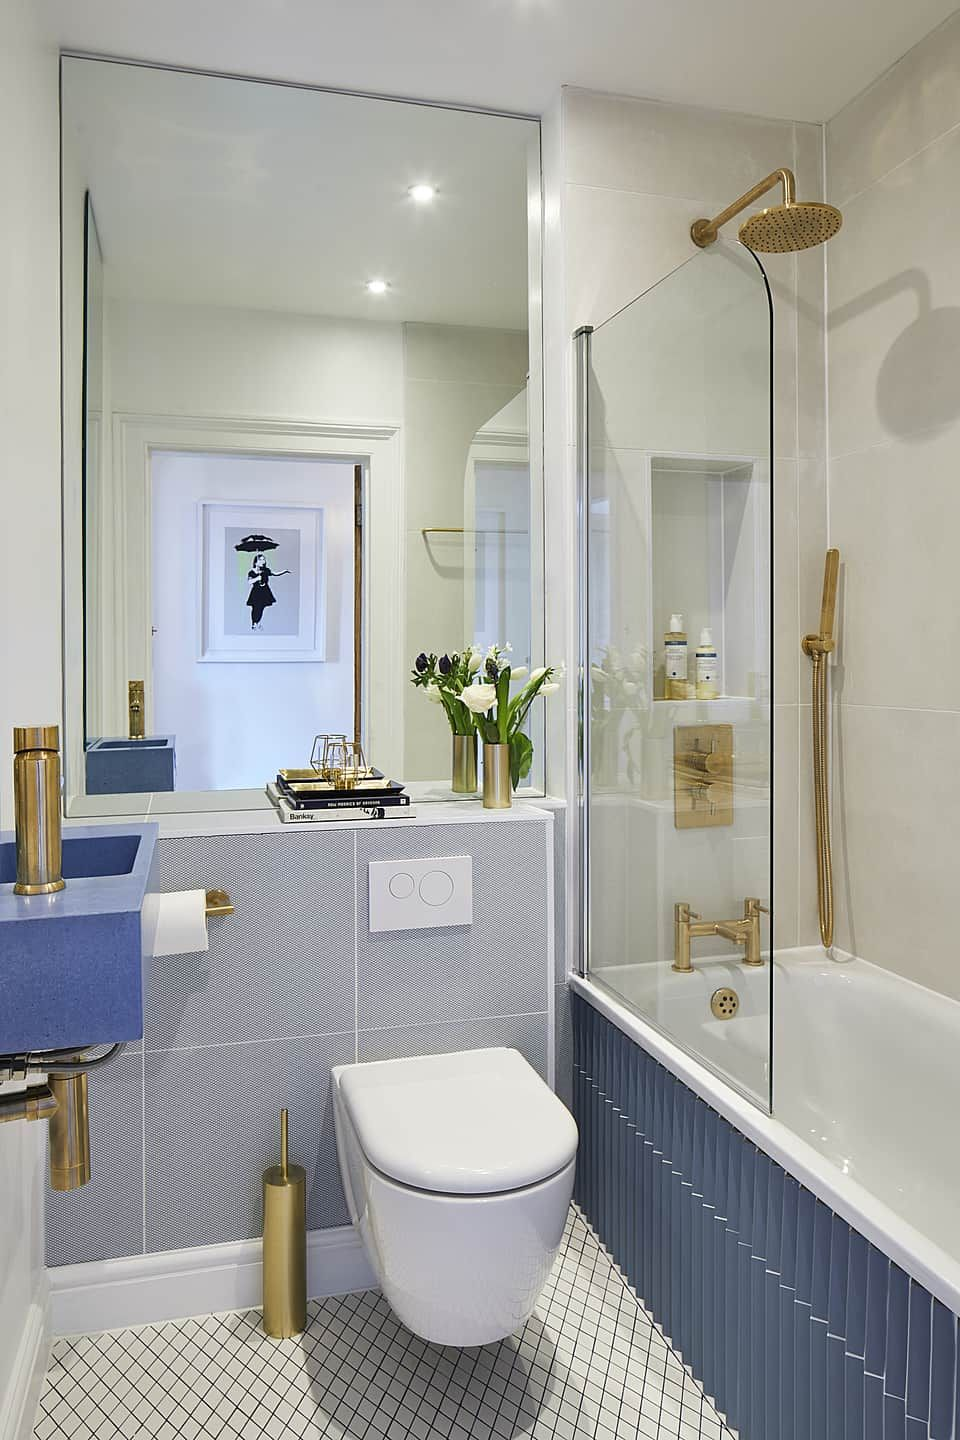 16 Best Small Bathroom Trends 2021 That Are Rule Breaking In 2020 Small Bathroom Trends Bathroom Design Small Modern Bathroom Design Small